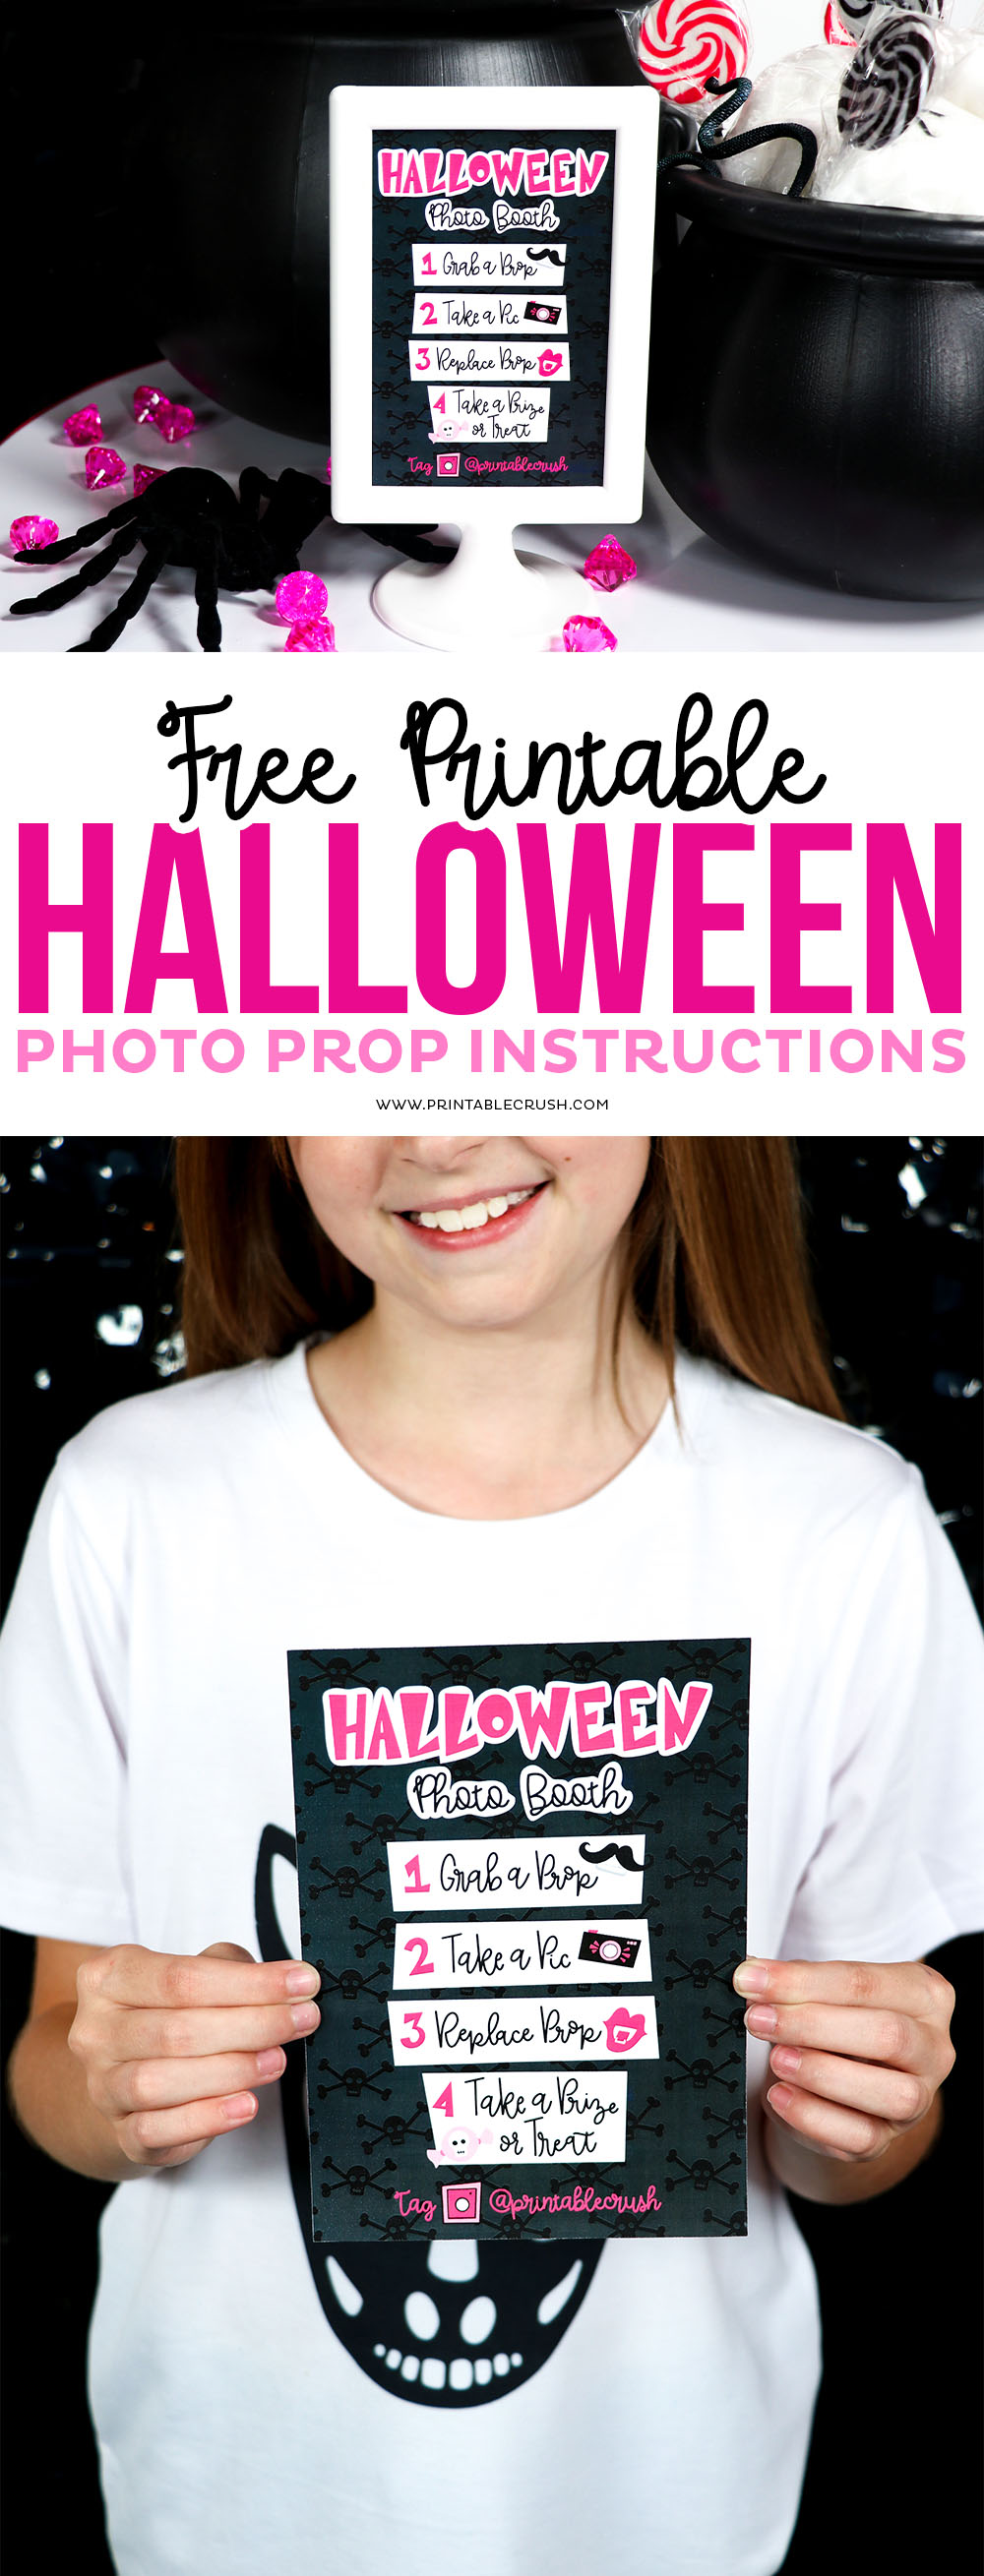 Halloween Photo Booth Instructions Free Printable